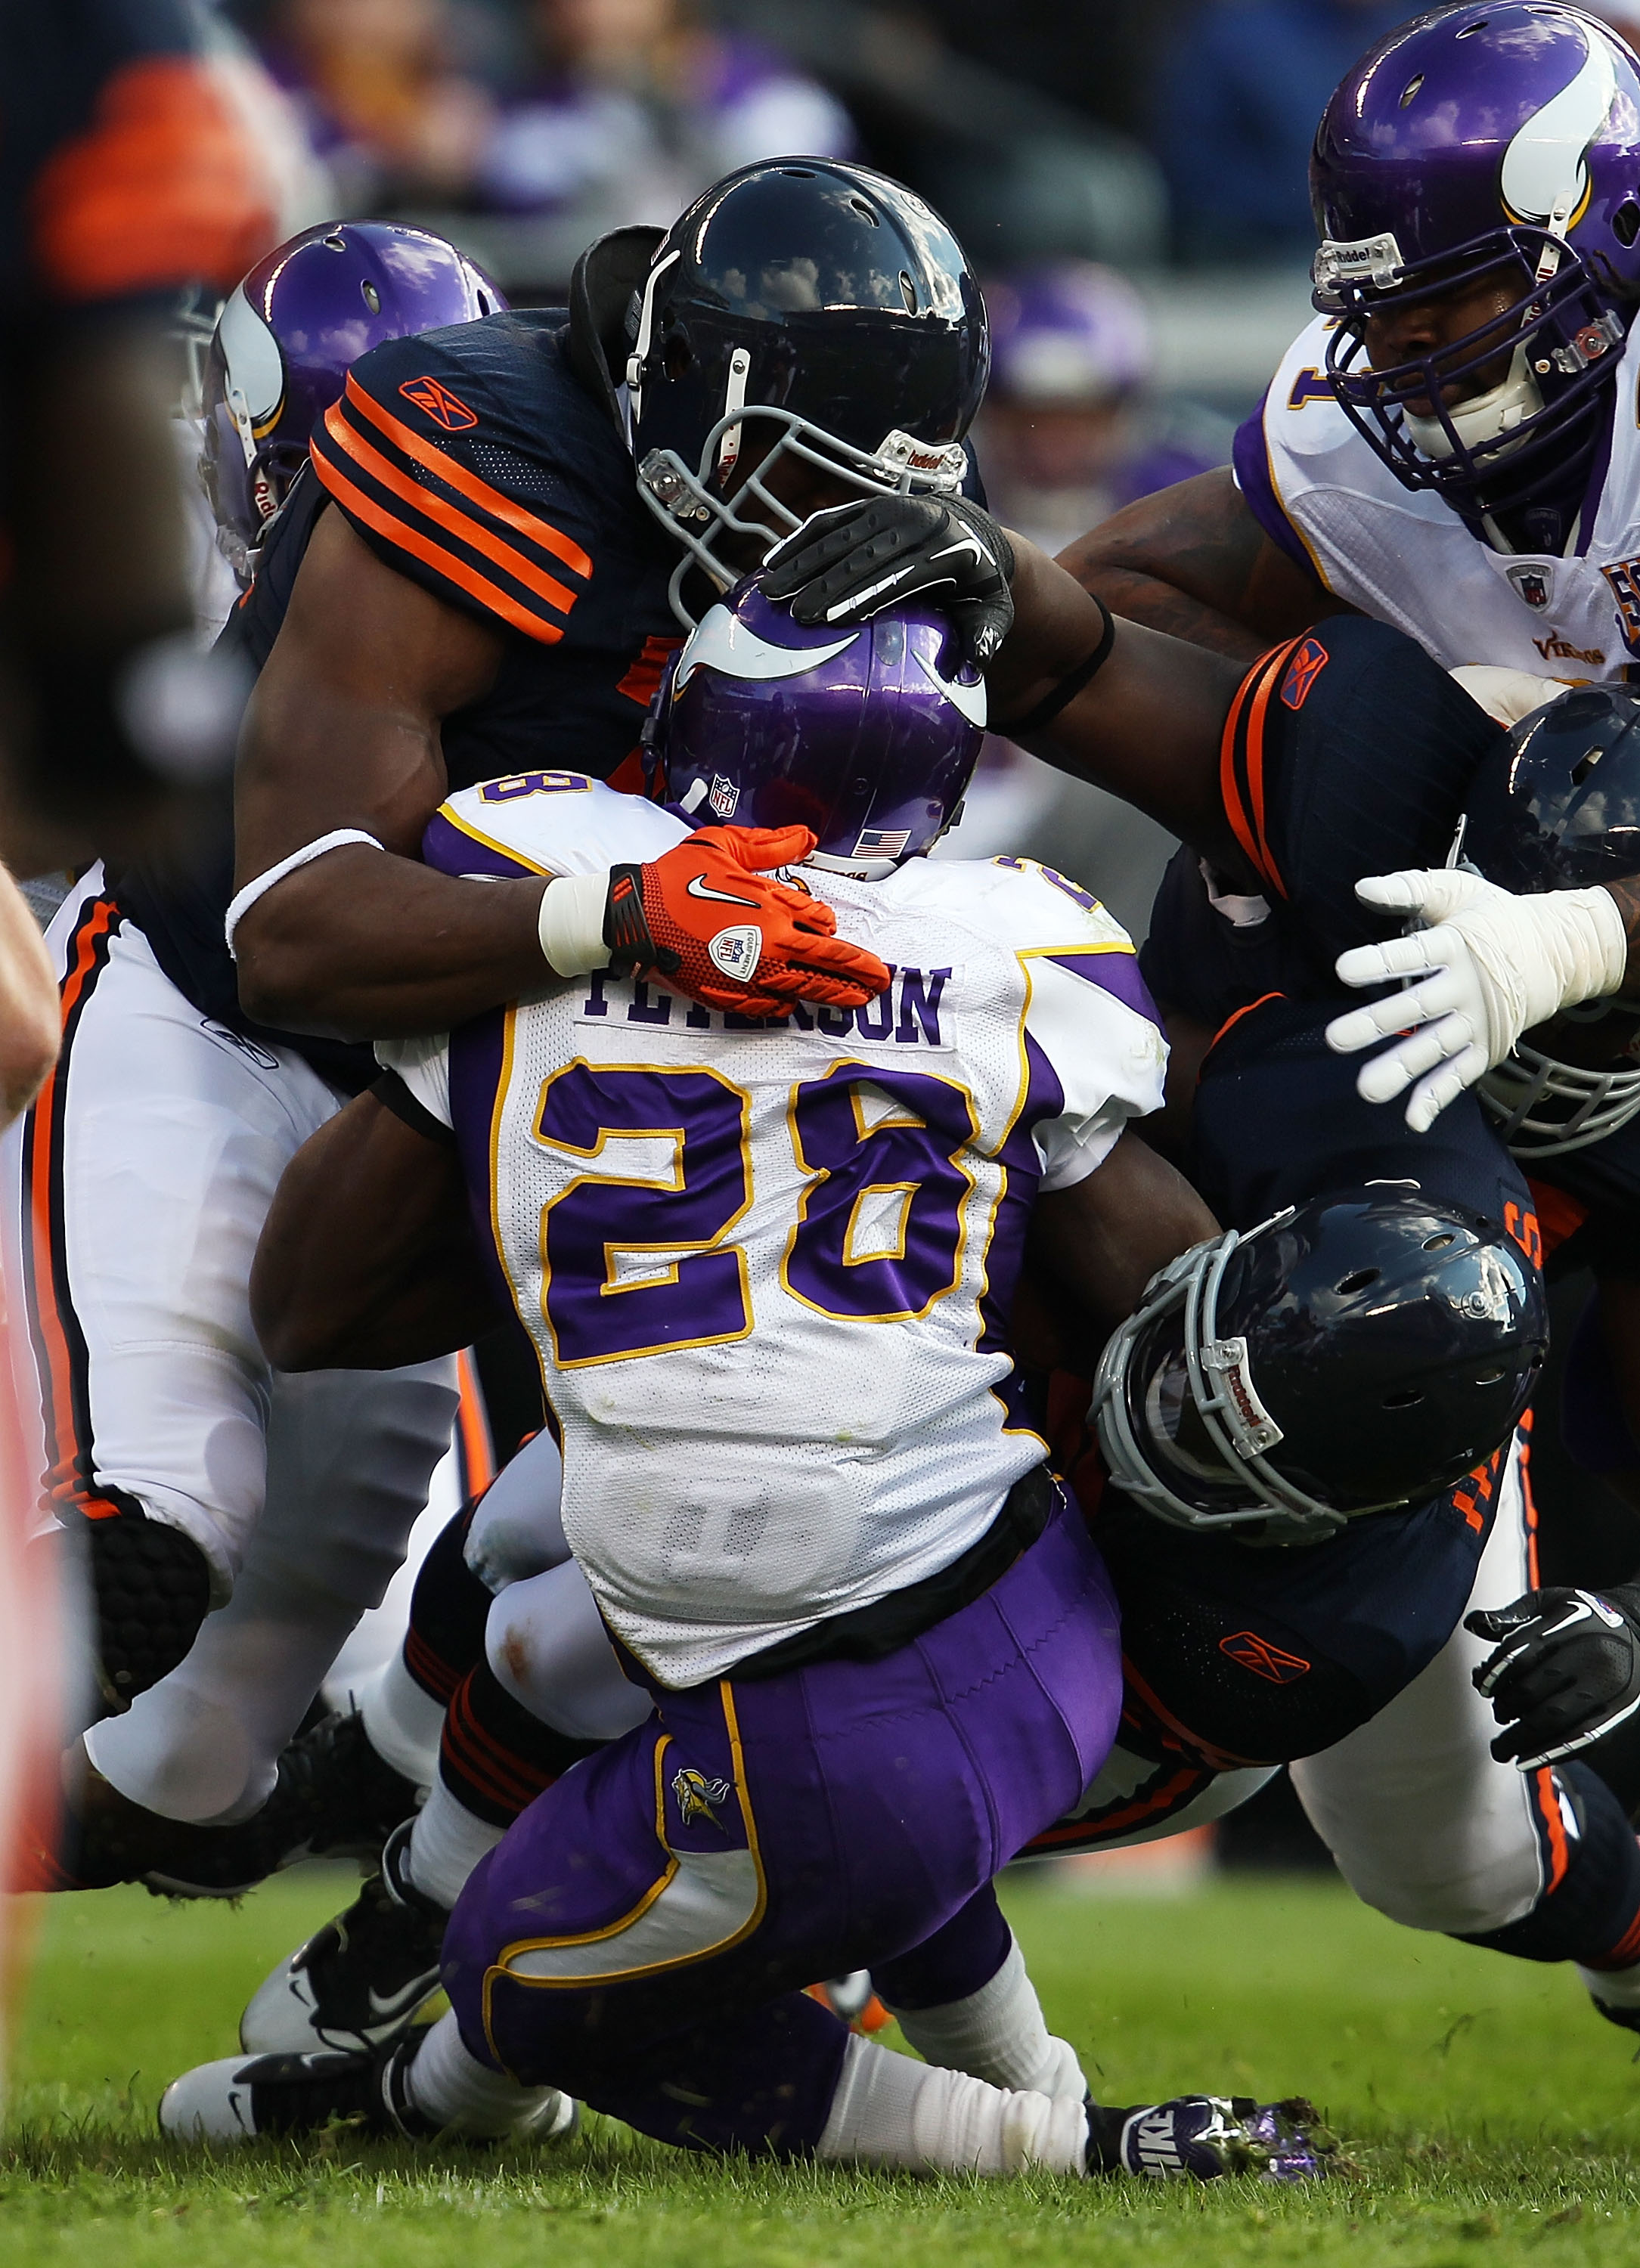 f05bd8d2b30a CHICAGO - NOVEMBER 14  Adrian Peterson  28 of the Minnesota Vikings is  tackled by